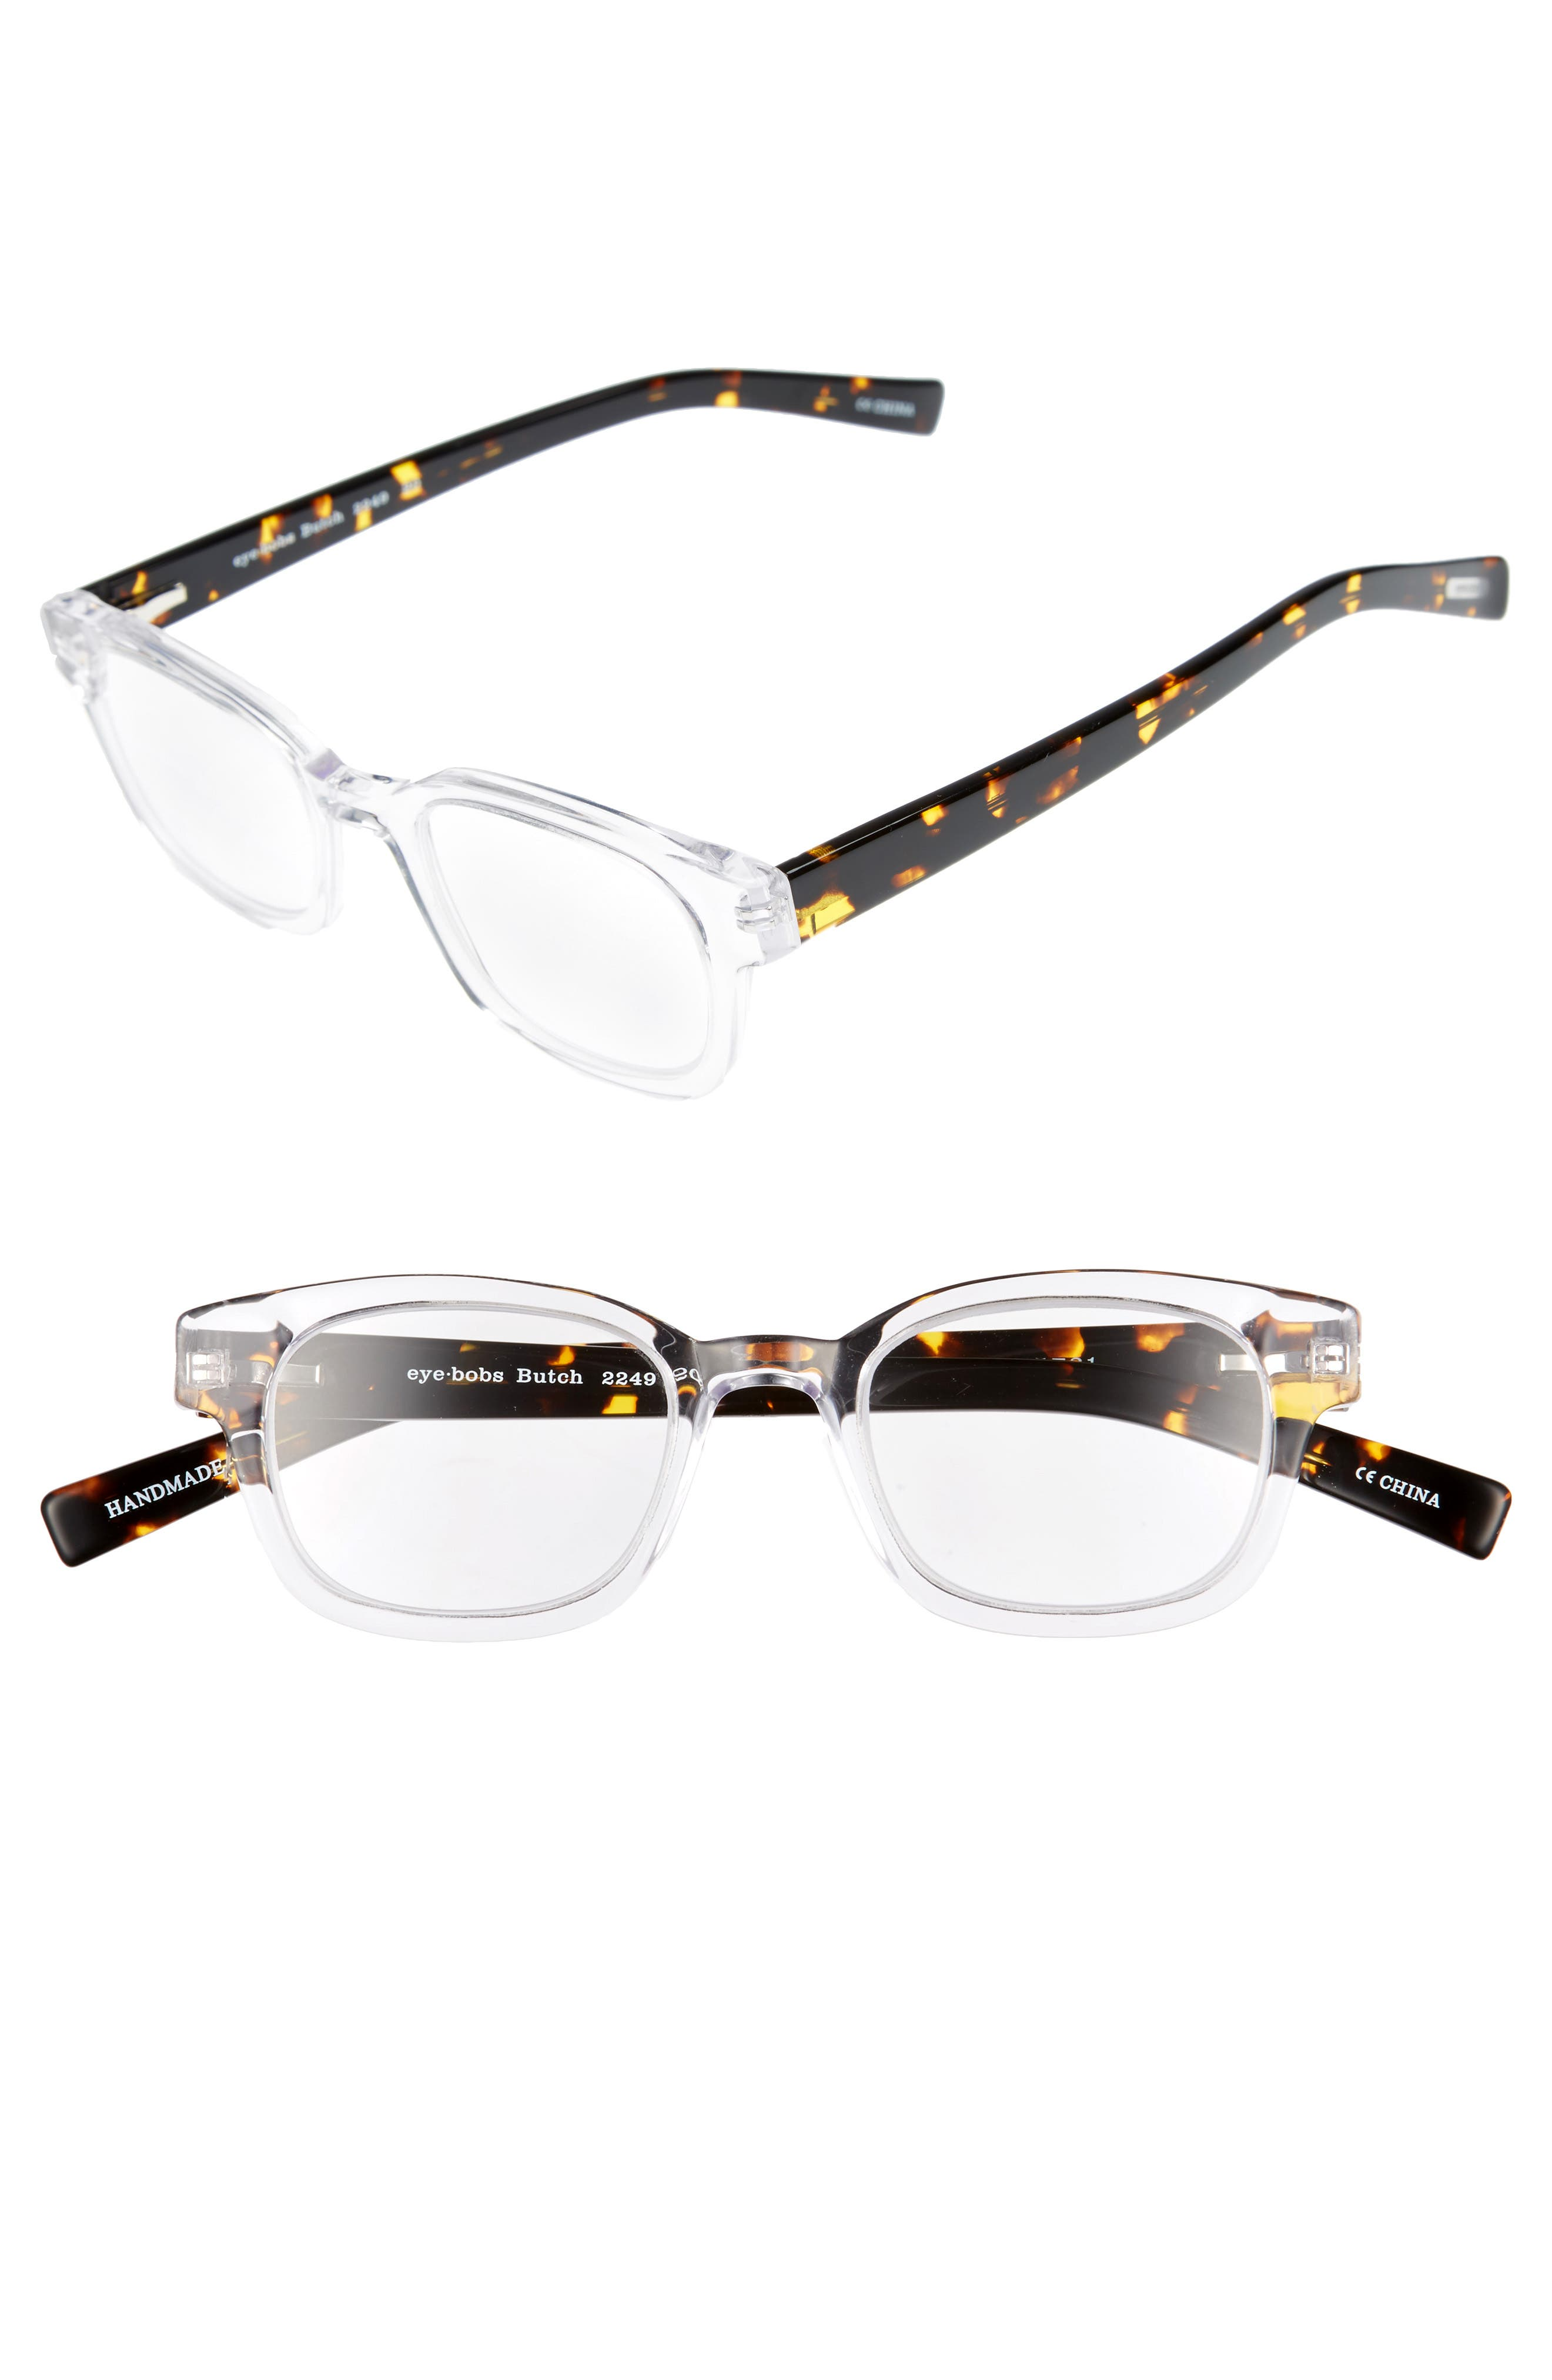 EYEBOBS Butch 45Mm Reading Glasses - Crystal With Tortoise